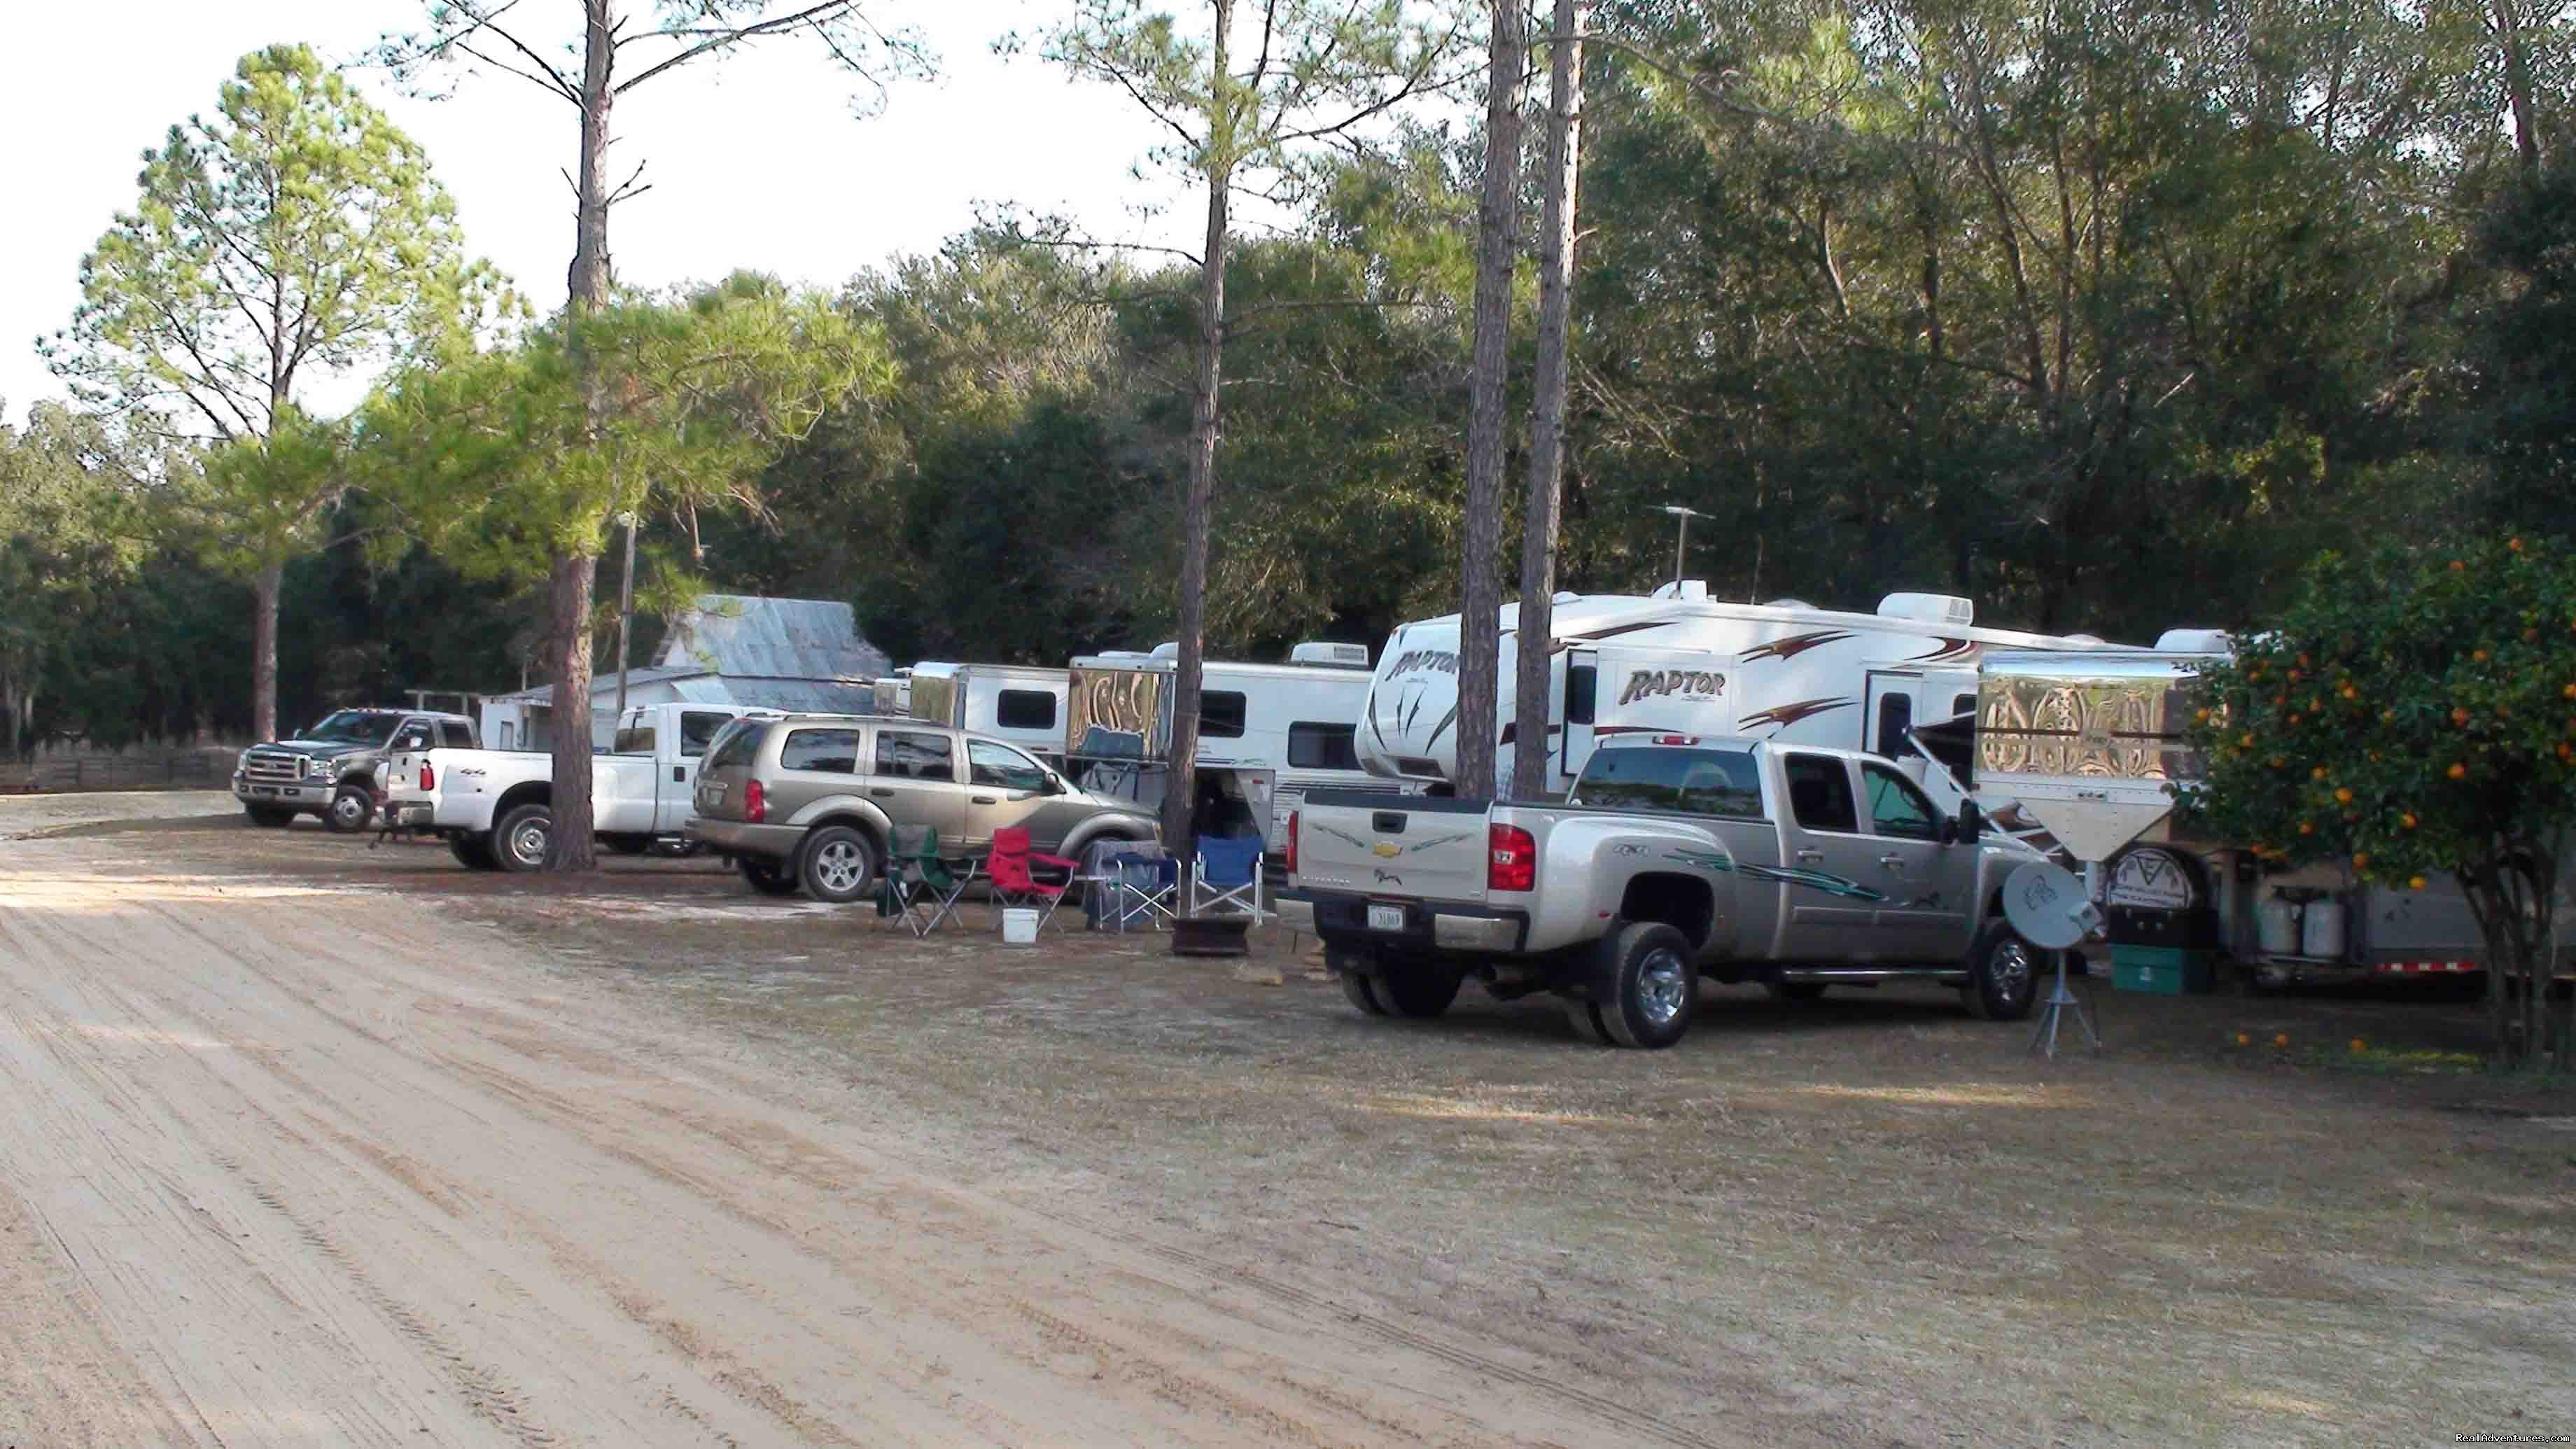 Full Hookup RV sites | Image #16/18 | Unique Horse & Nature Resort in Ocala, FL